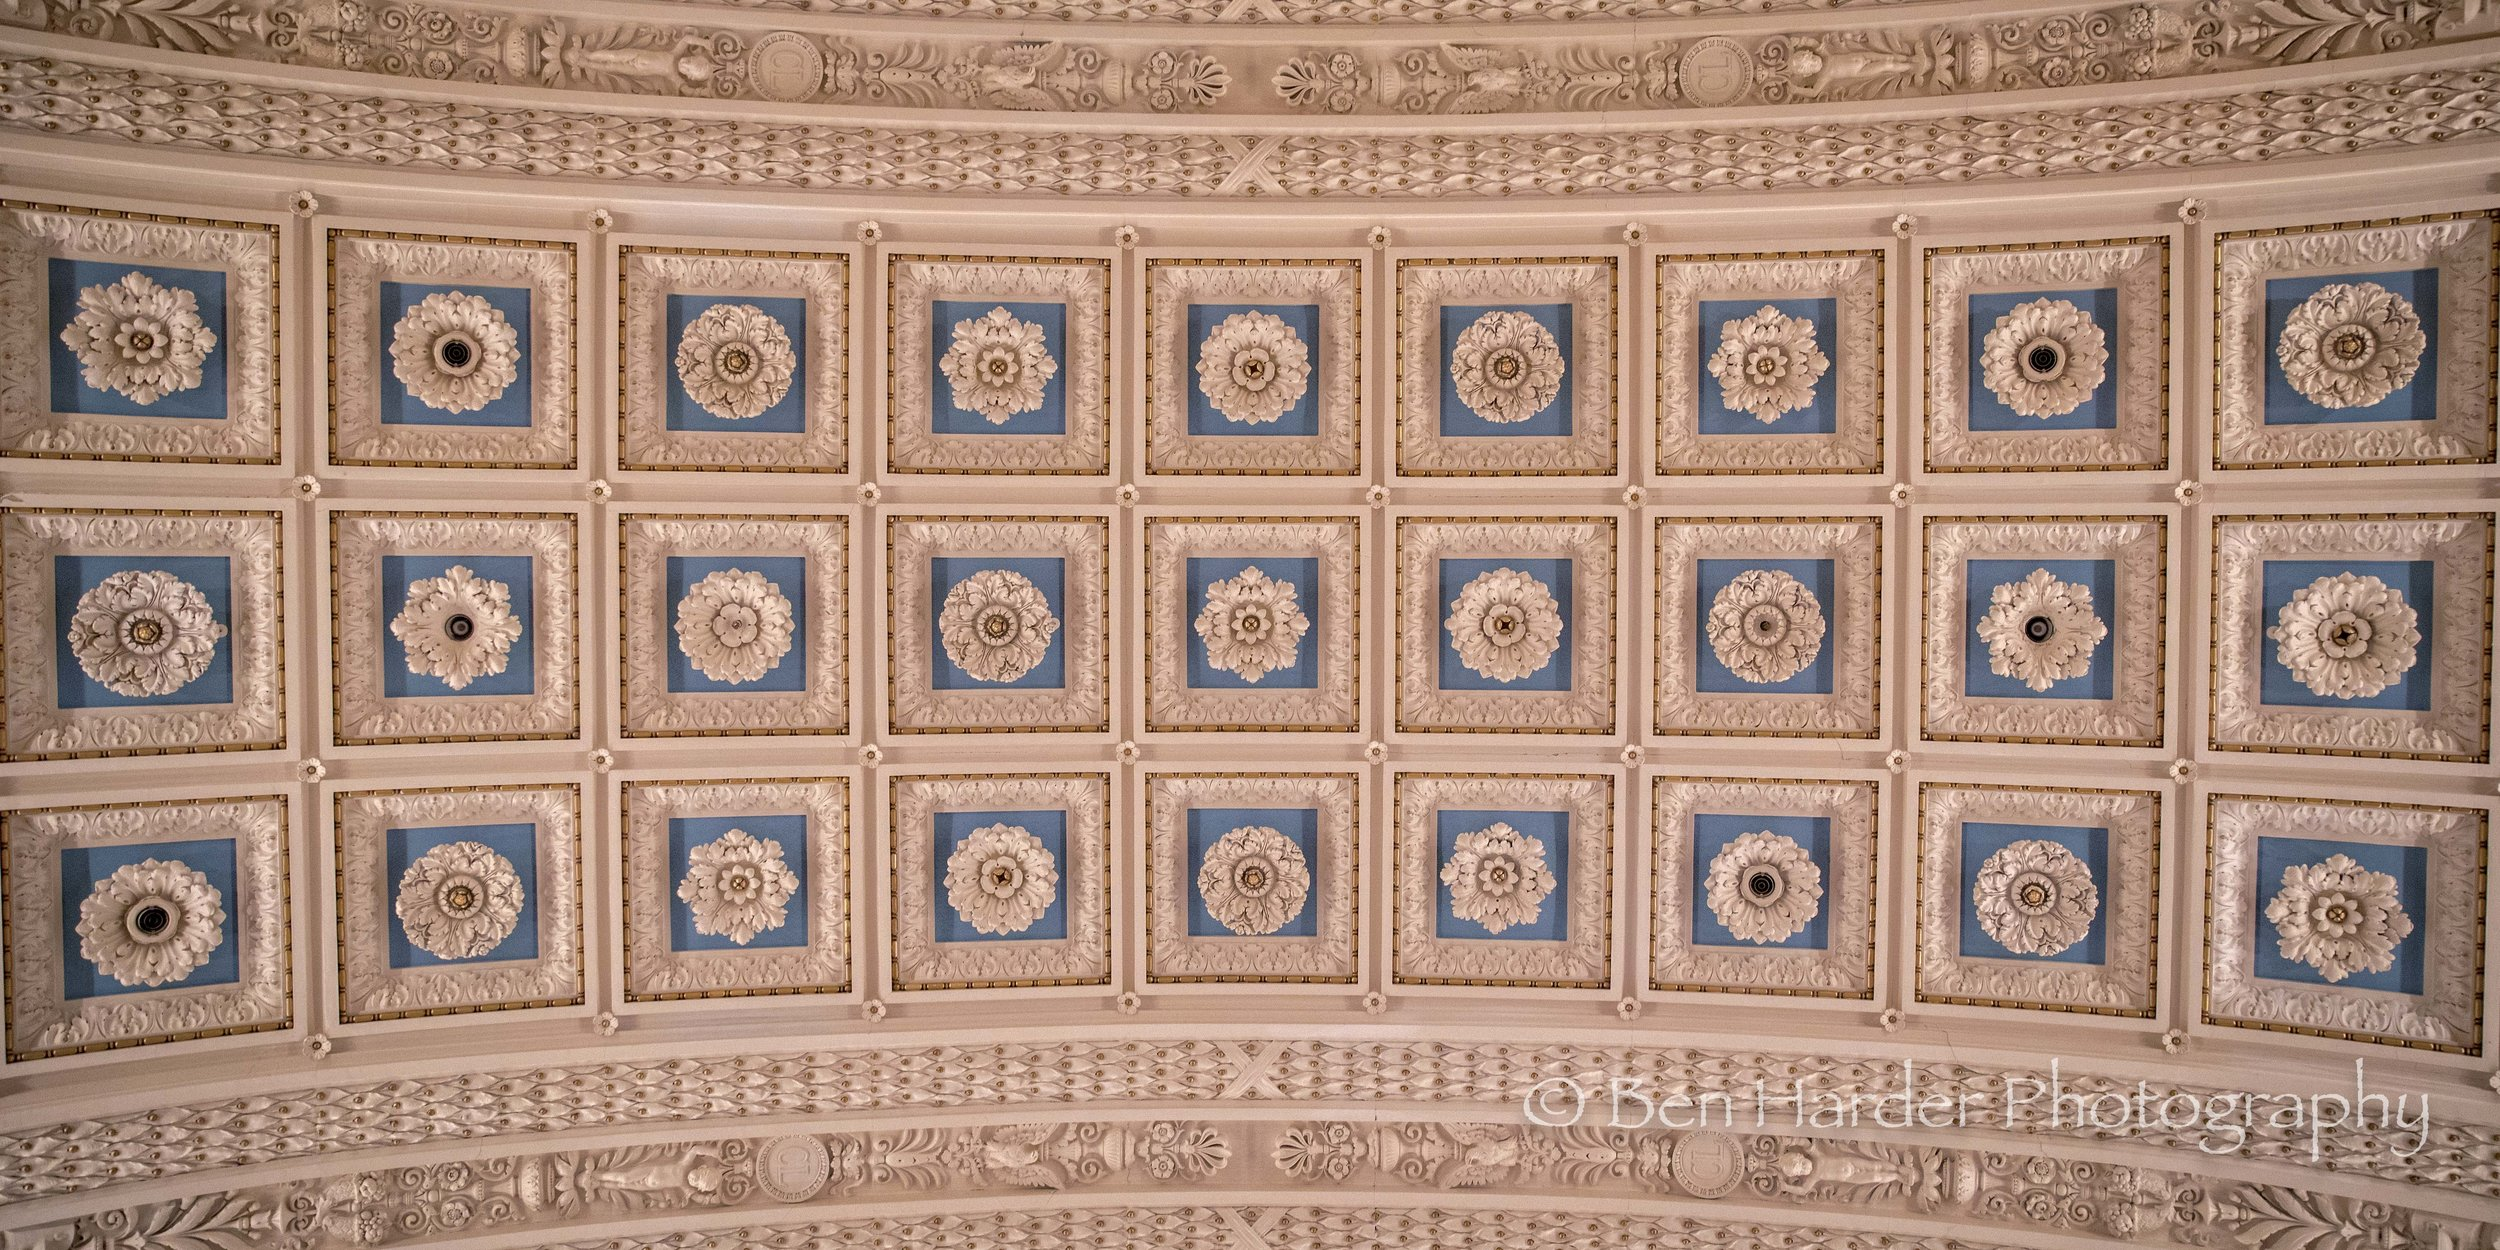 Library of Congress Ceiling 2.jpg